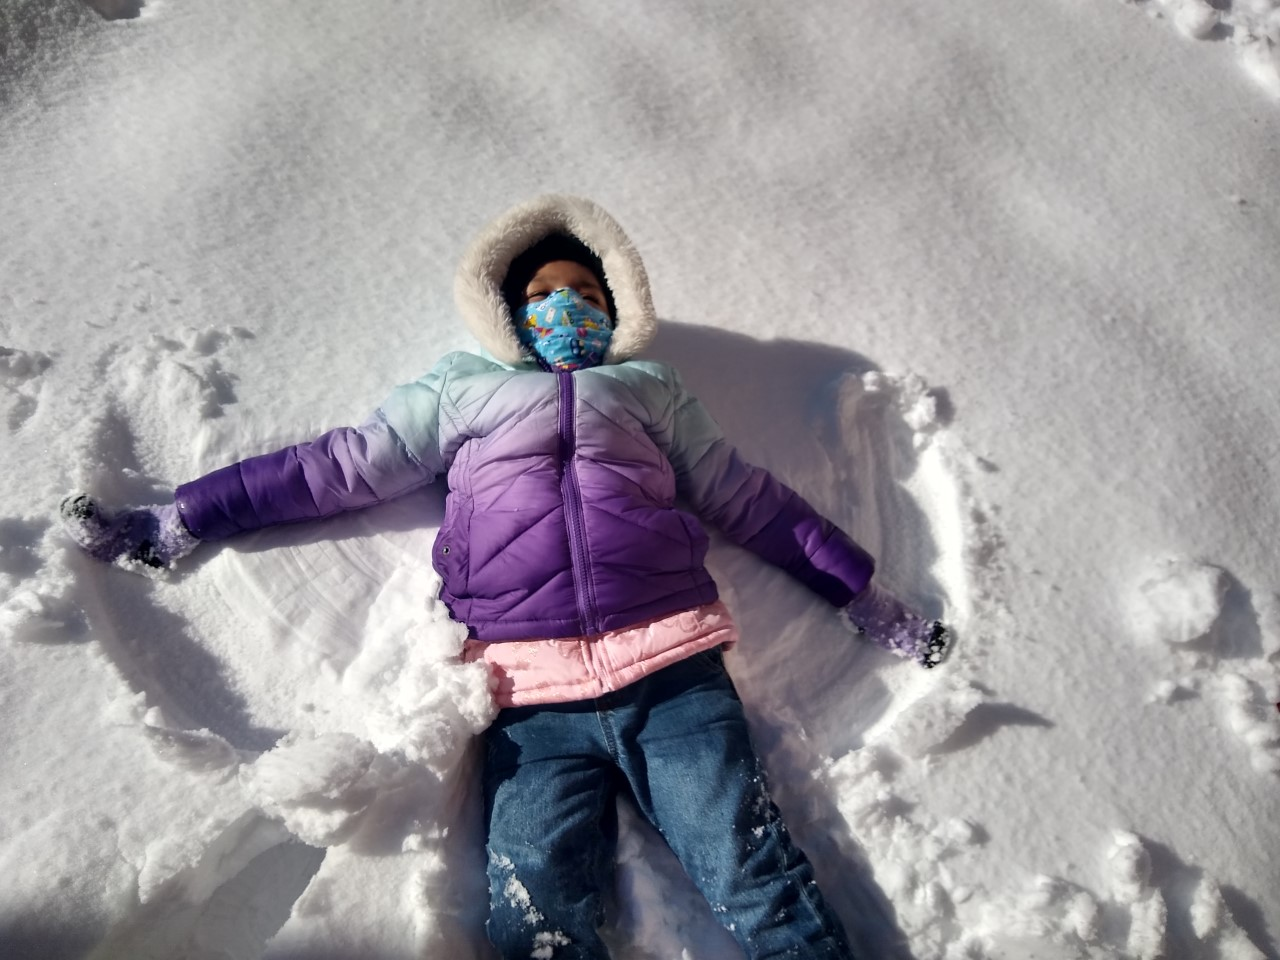 a girl making a snow angel on the ground